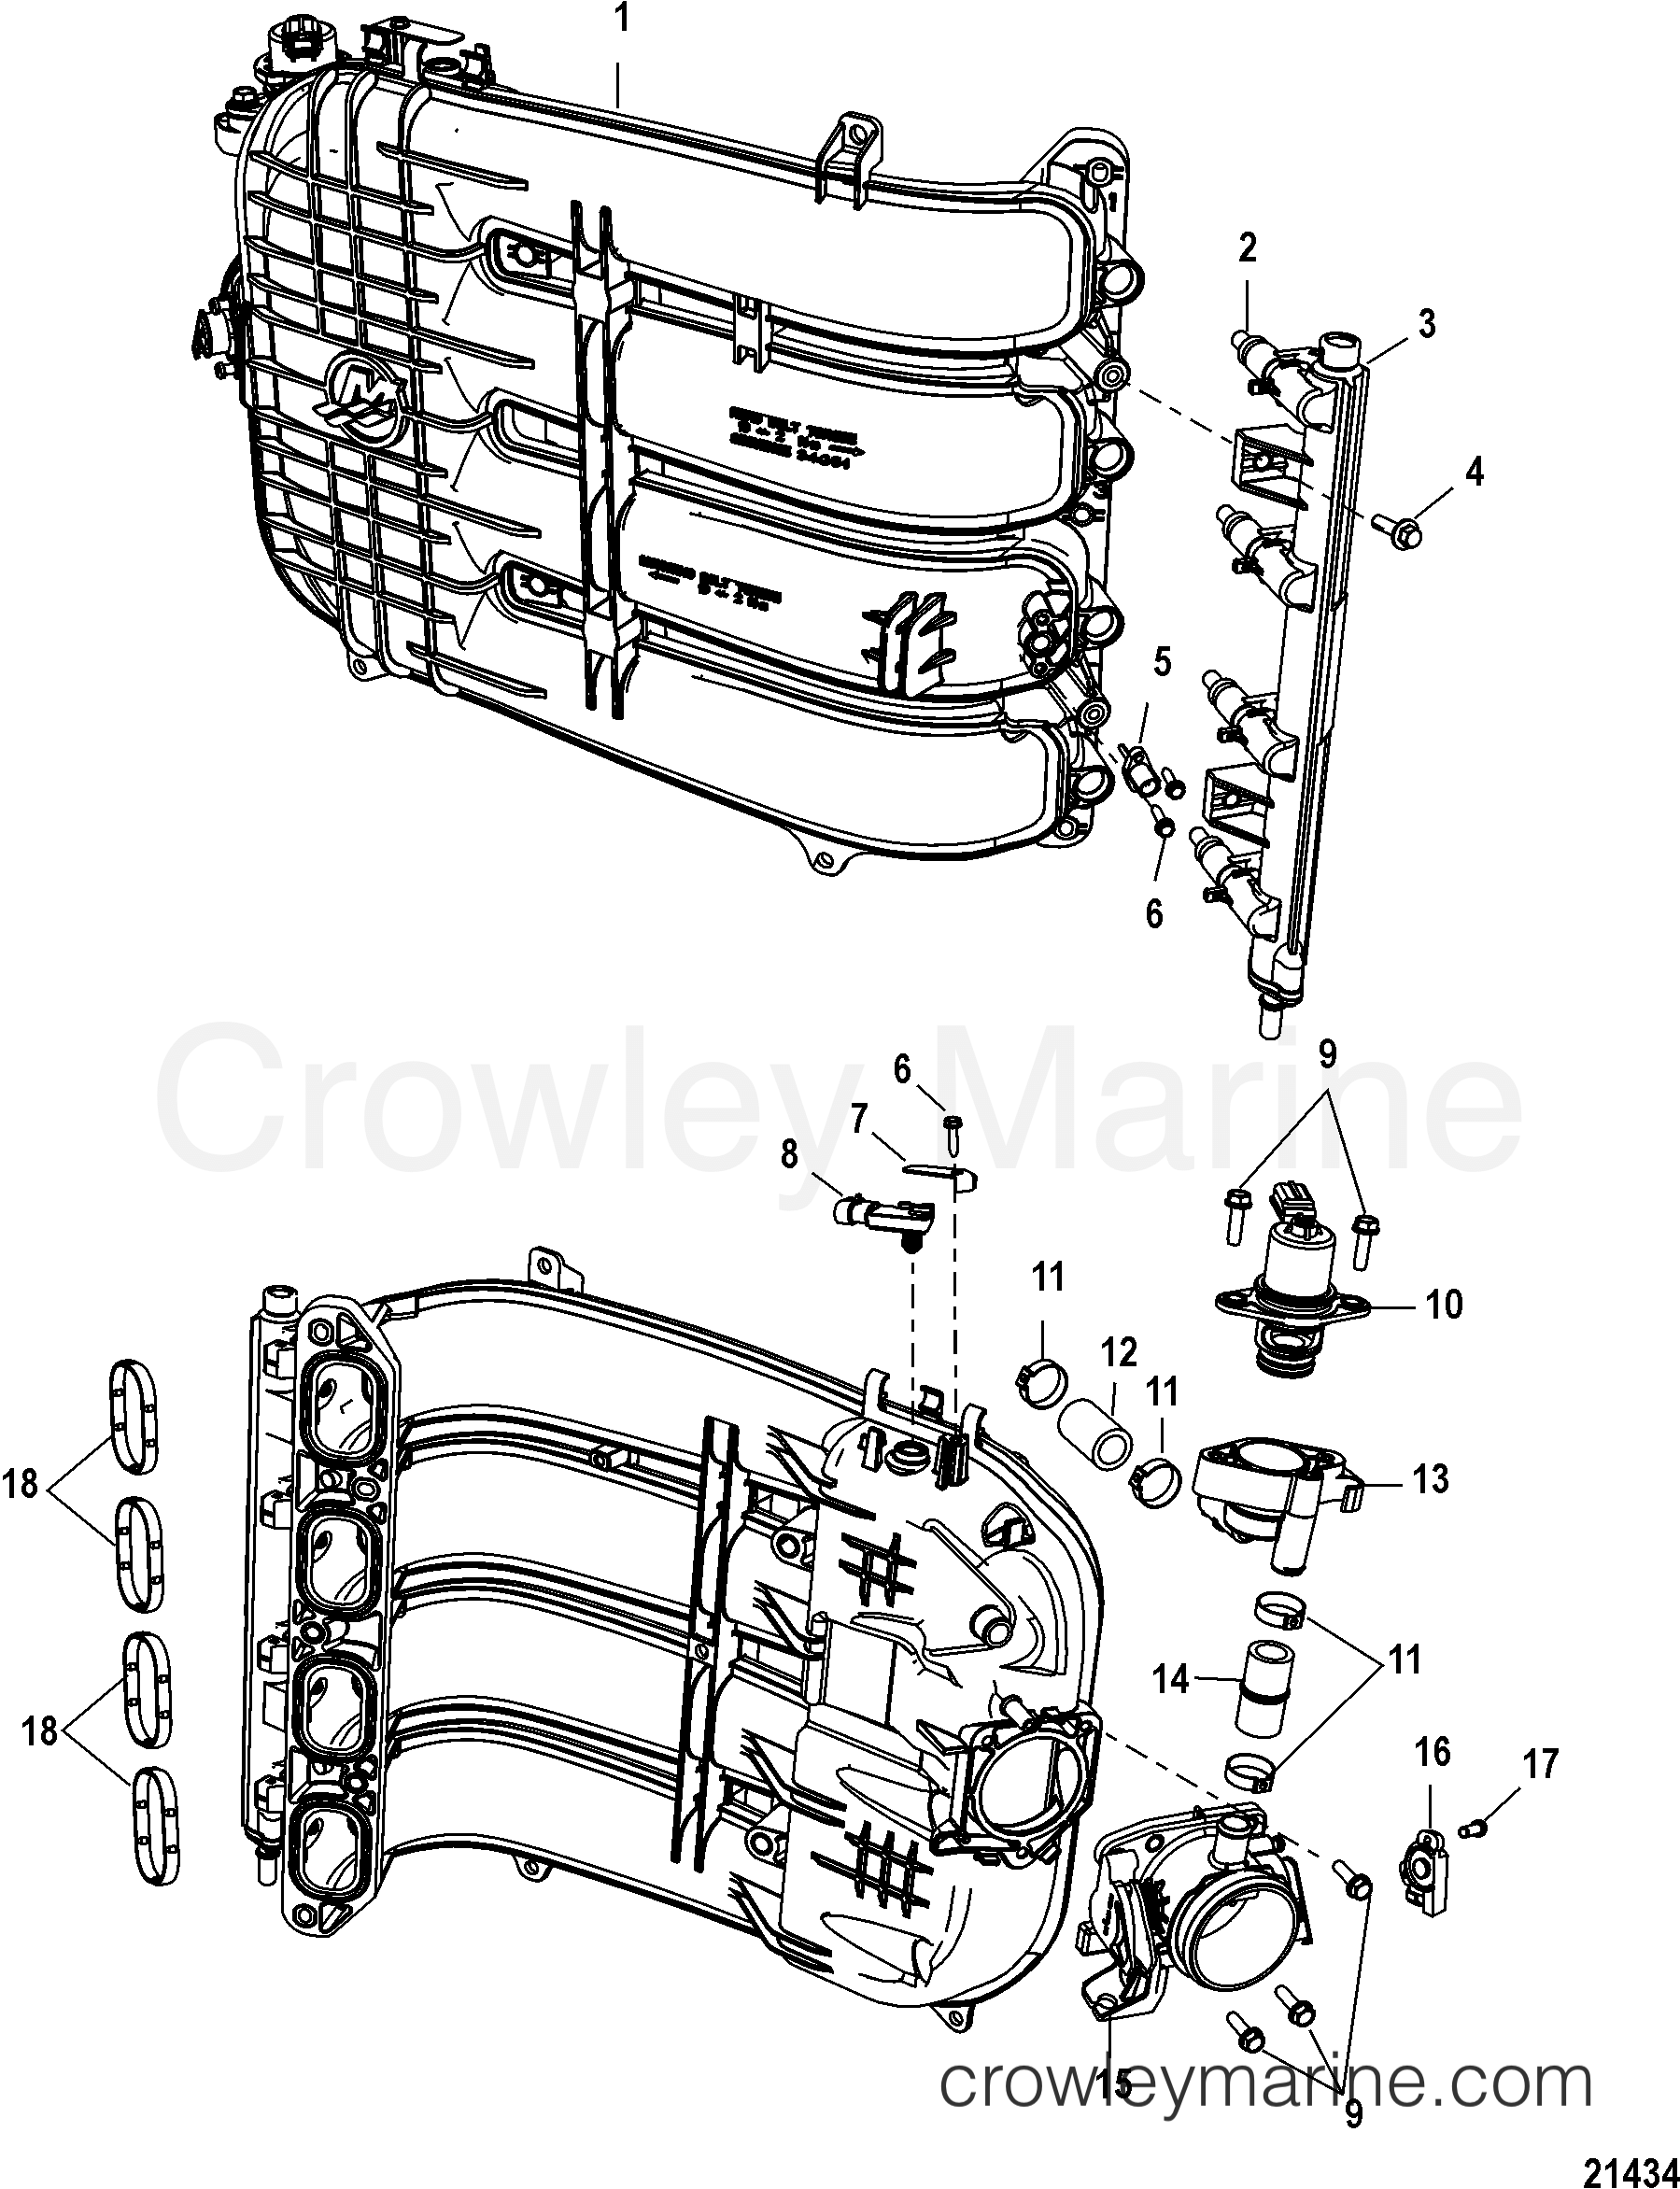 Intergrated Air Fuel Module Components